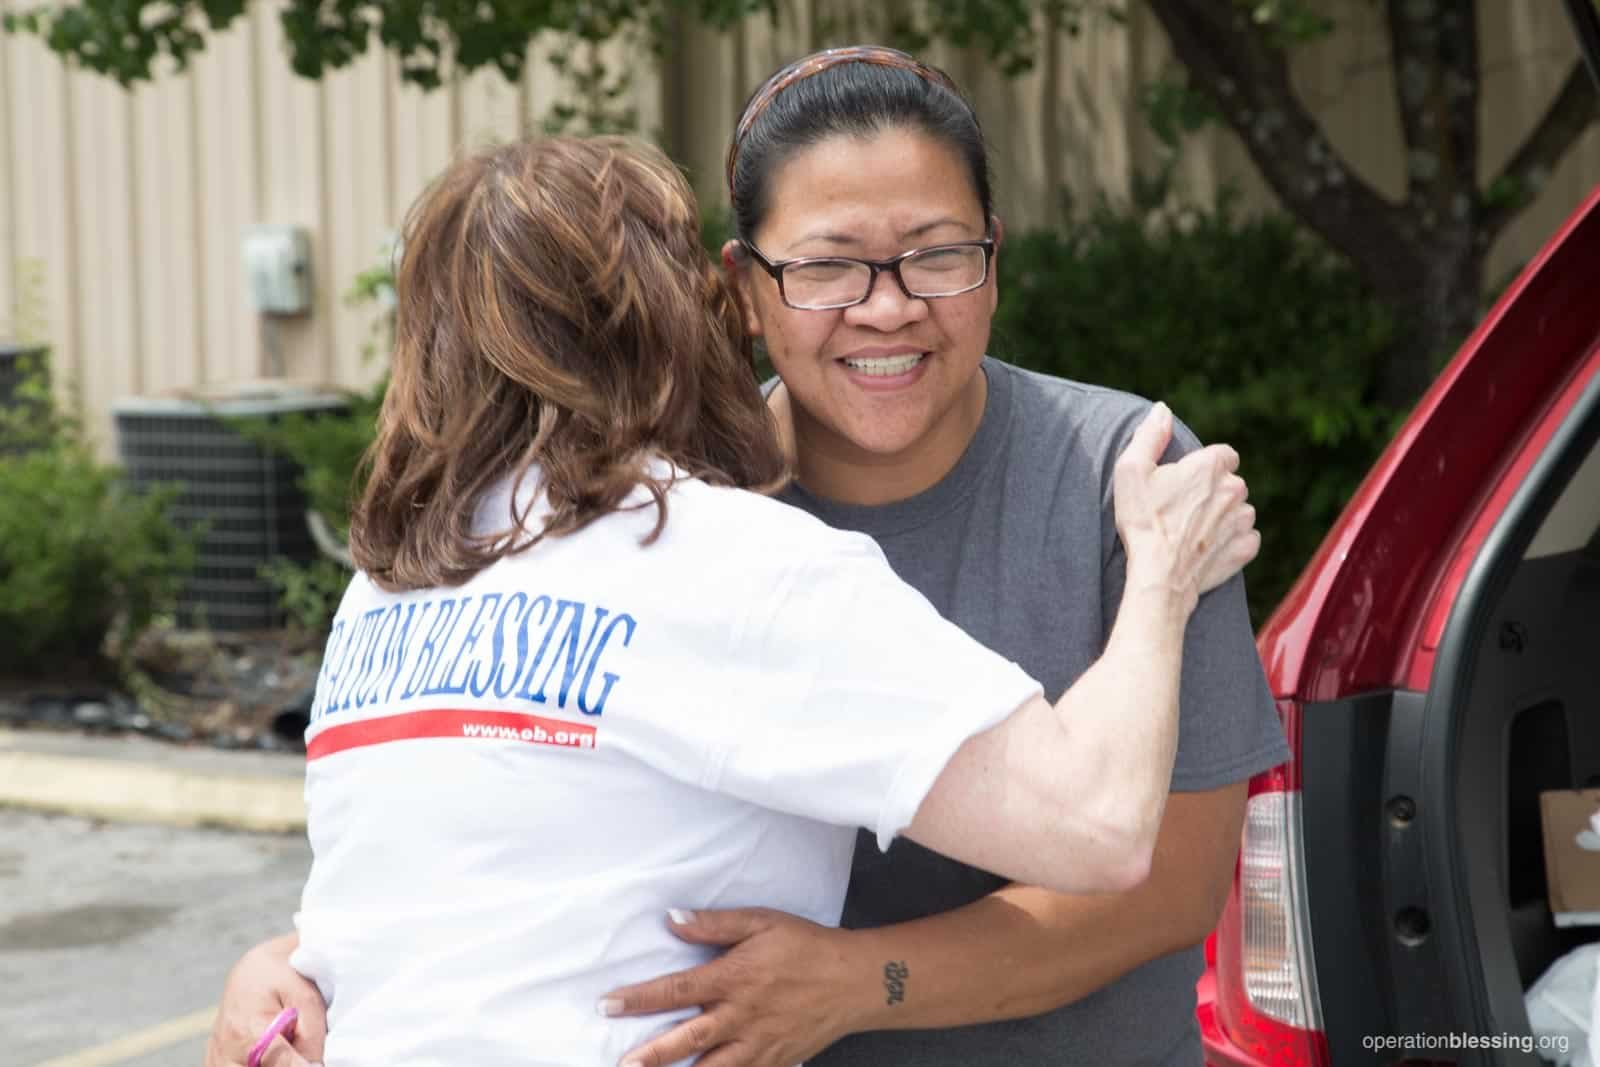 Mayflor receives an encouraging hug from an Operation Blessing worker.